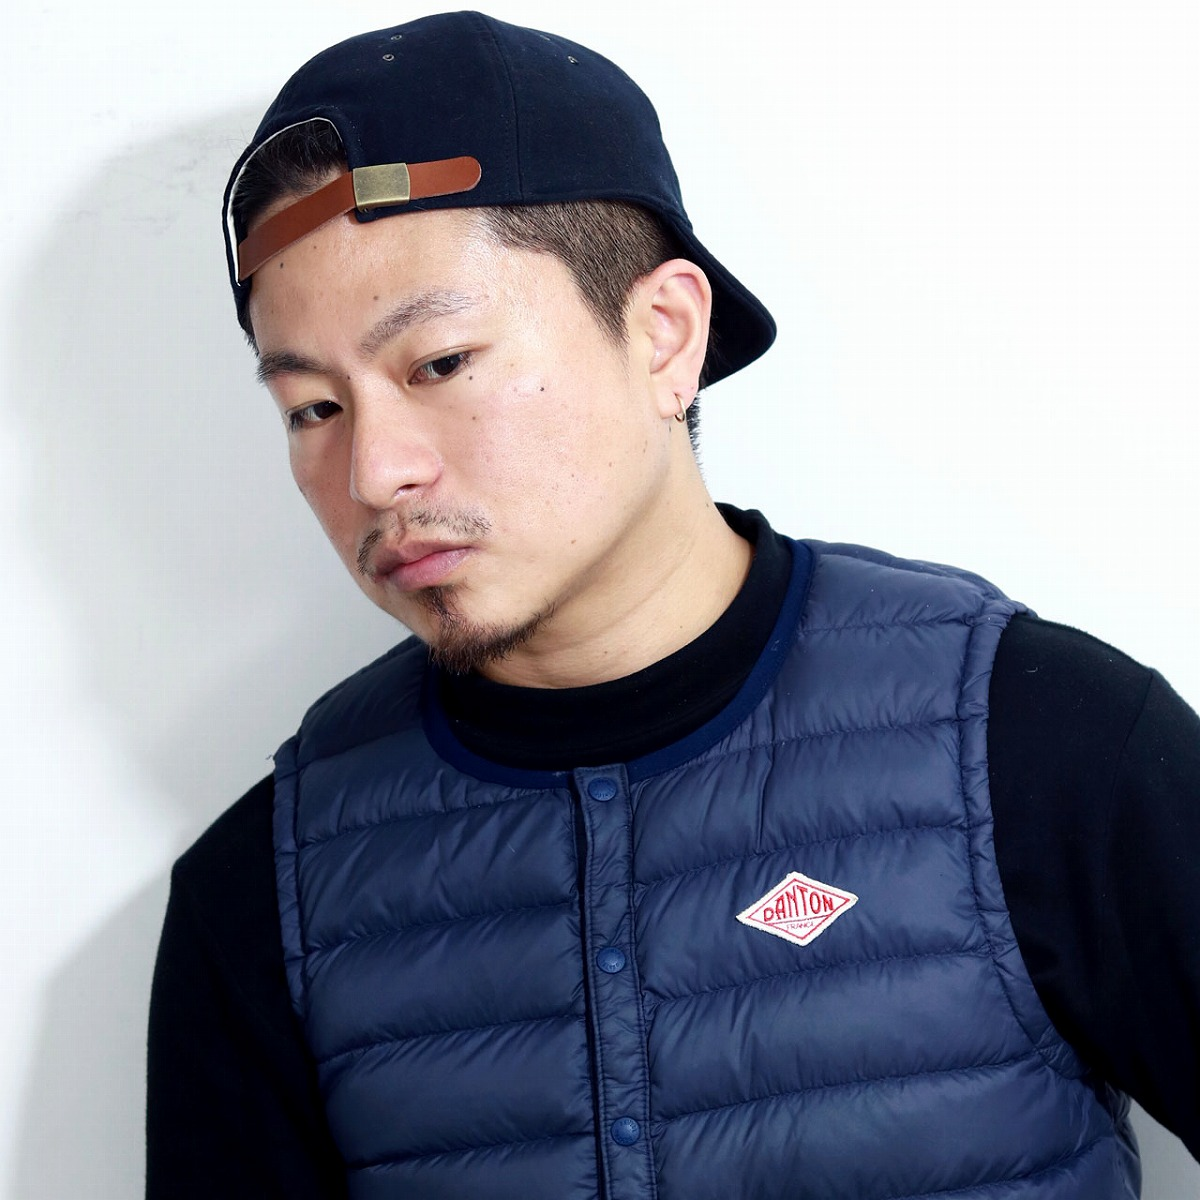 cc5c271579ad6 ELEHELM HAT STORE  CAP ラカル 6 panel cap racal cap hat men cap lady s   dark  blue navy (Christmas gift packing lapping free of charge) made in ショート ...